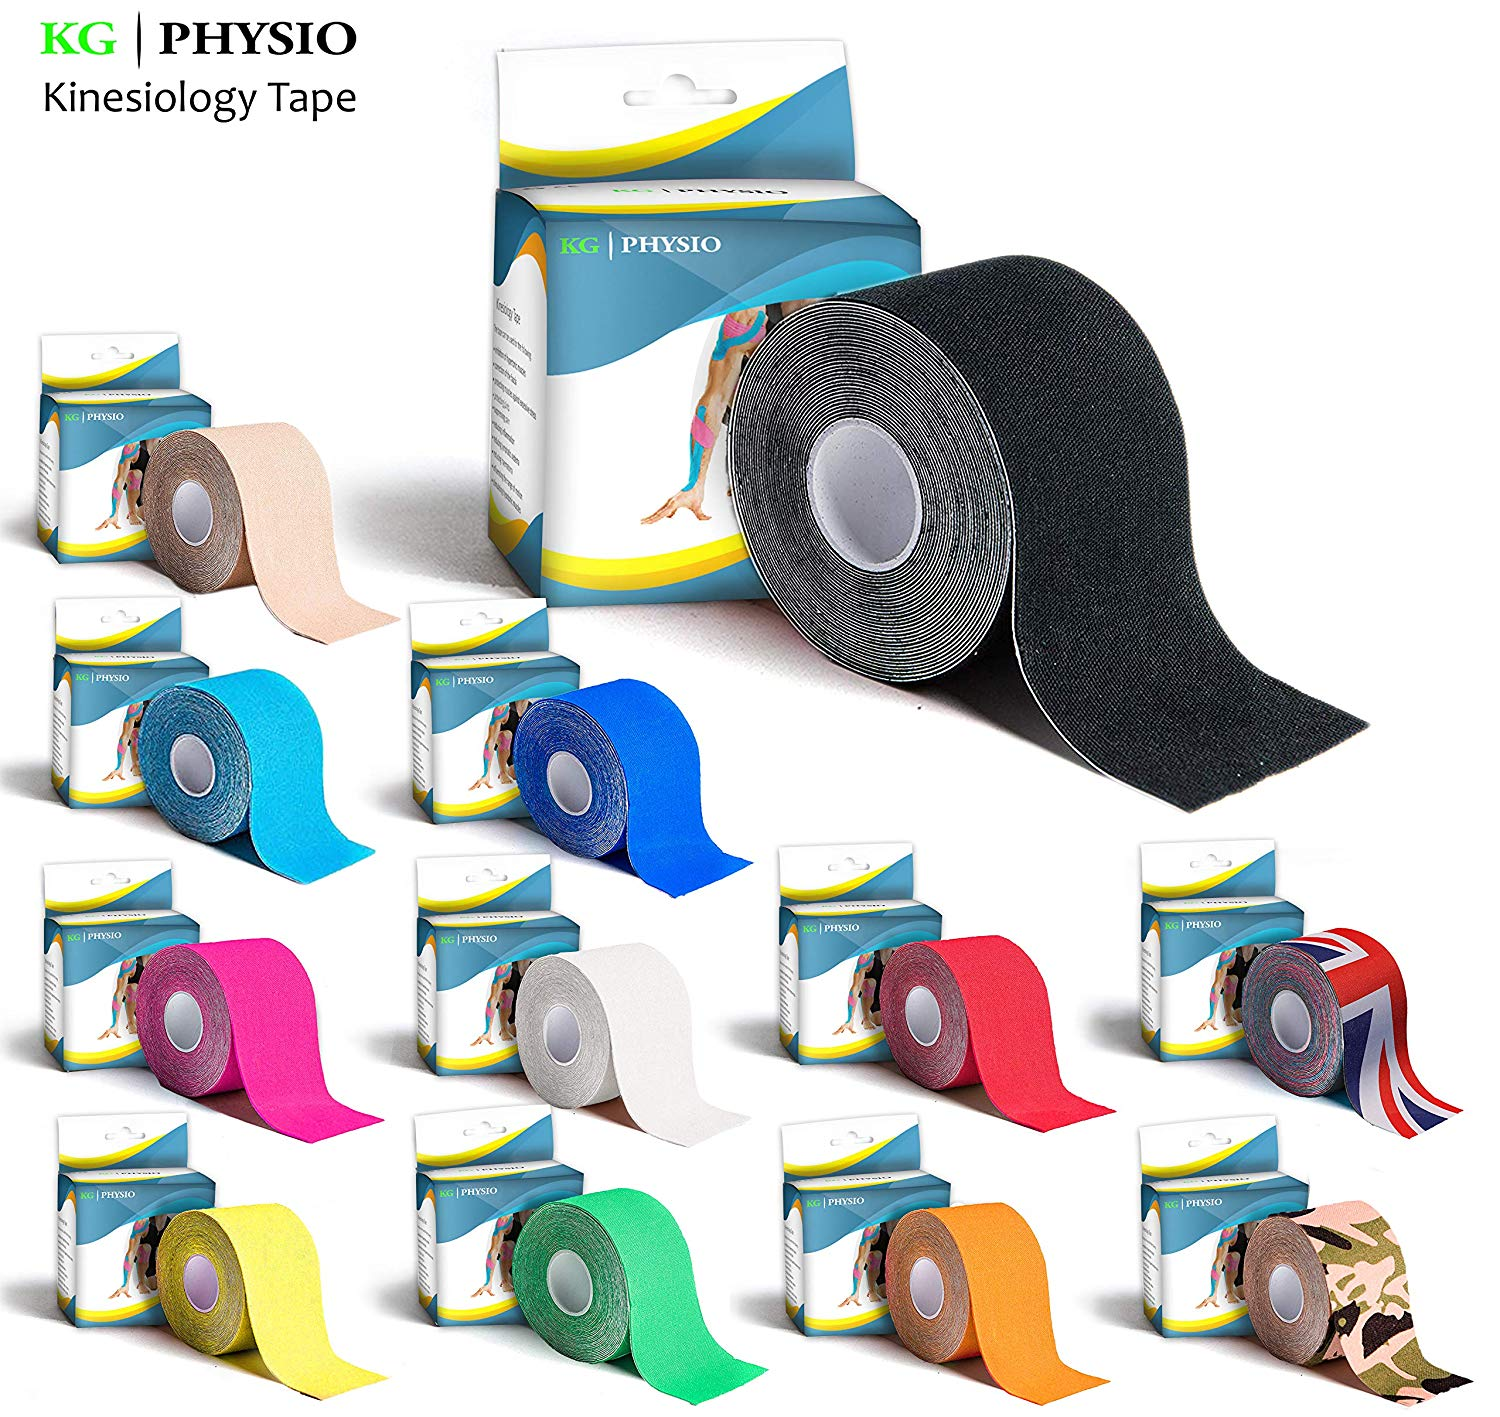 KG Physio Kinesiology Tape